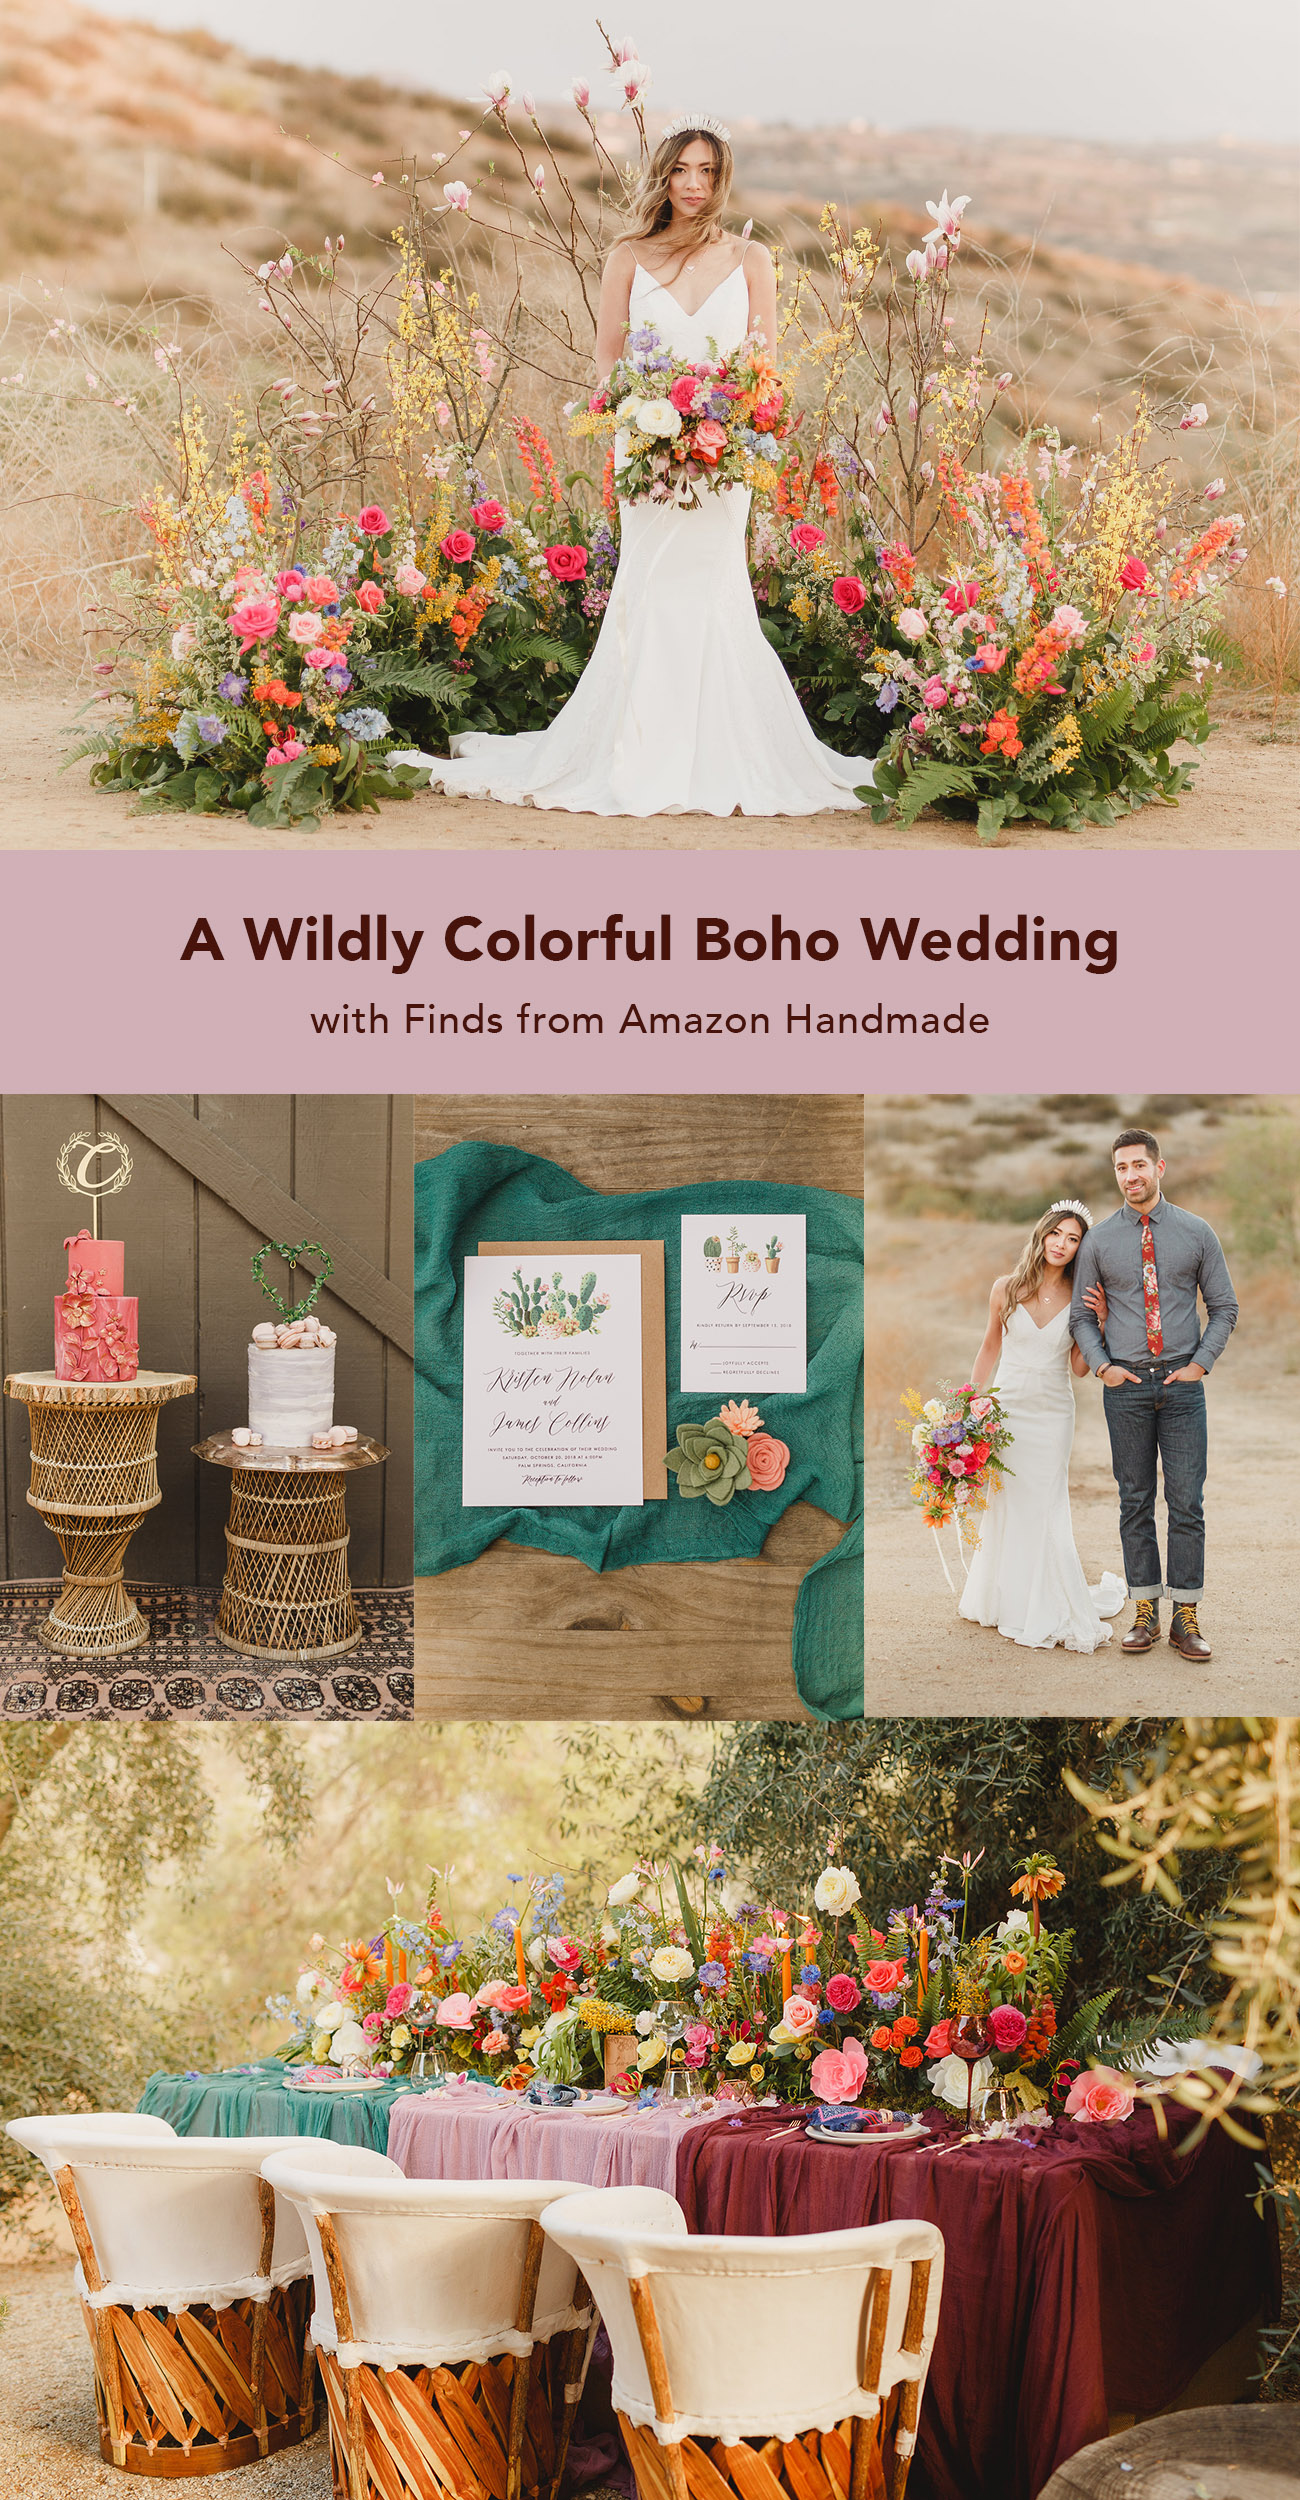 A Wildly Colorful Boho Wedding with Finds from Amazon Handmade